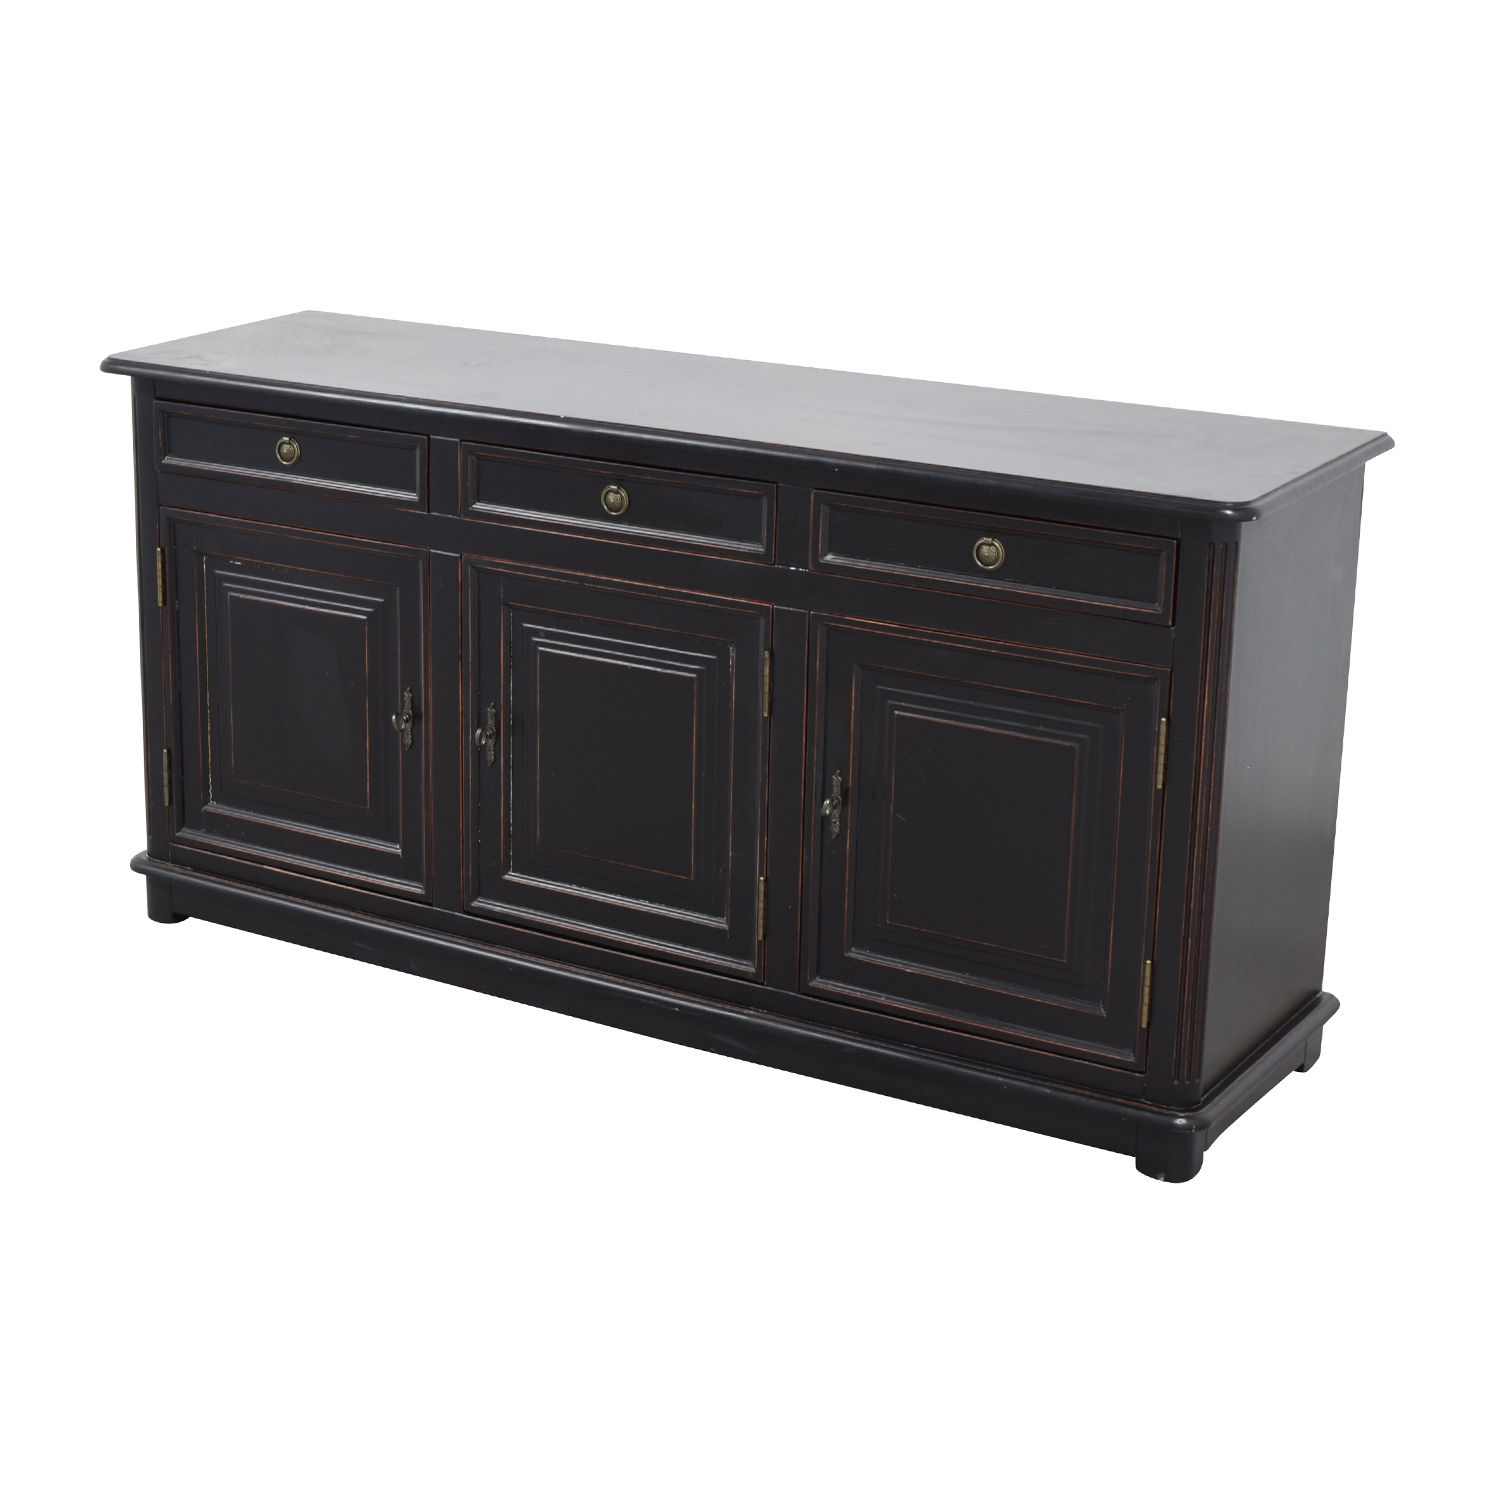 Ballard Designs Ballard Designs Dehavilland 3-Drawer Console or Sidetable on sale